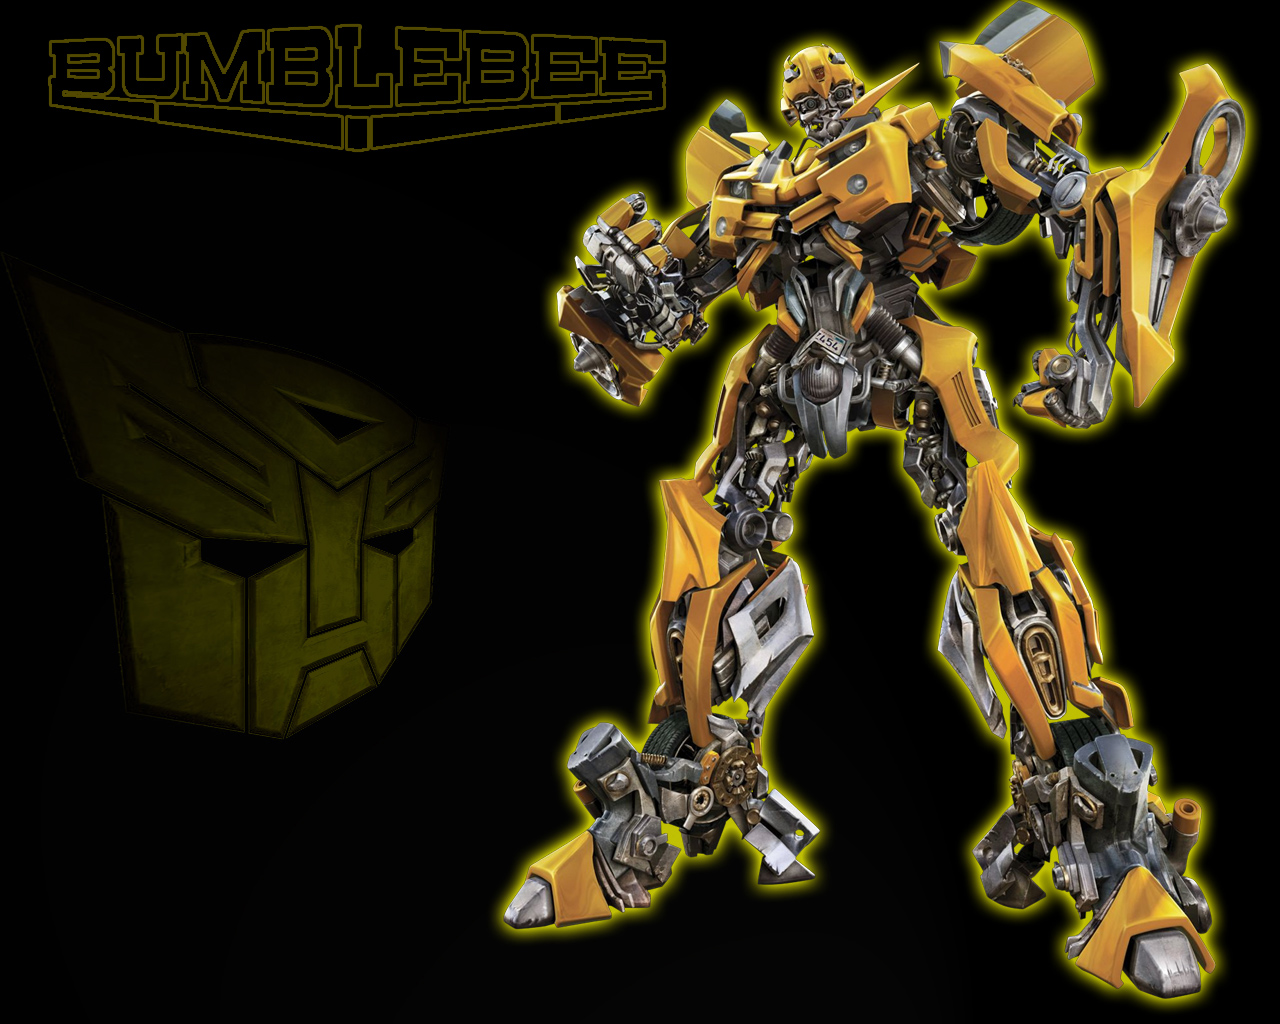 http://4.bp.blogspot.com/-HUjCaNCh0rY/Tc_DcTafehI/AAAAAAAAAAc/QaMaemnrMDA/s1600/transformers-movie-wallpaper-7-12541.jpg